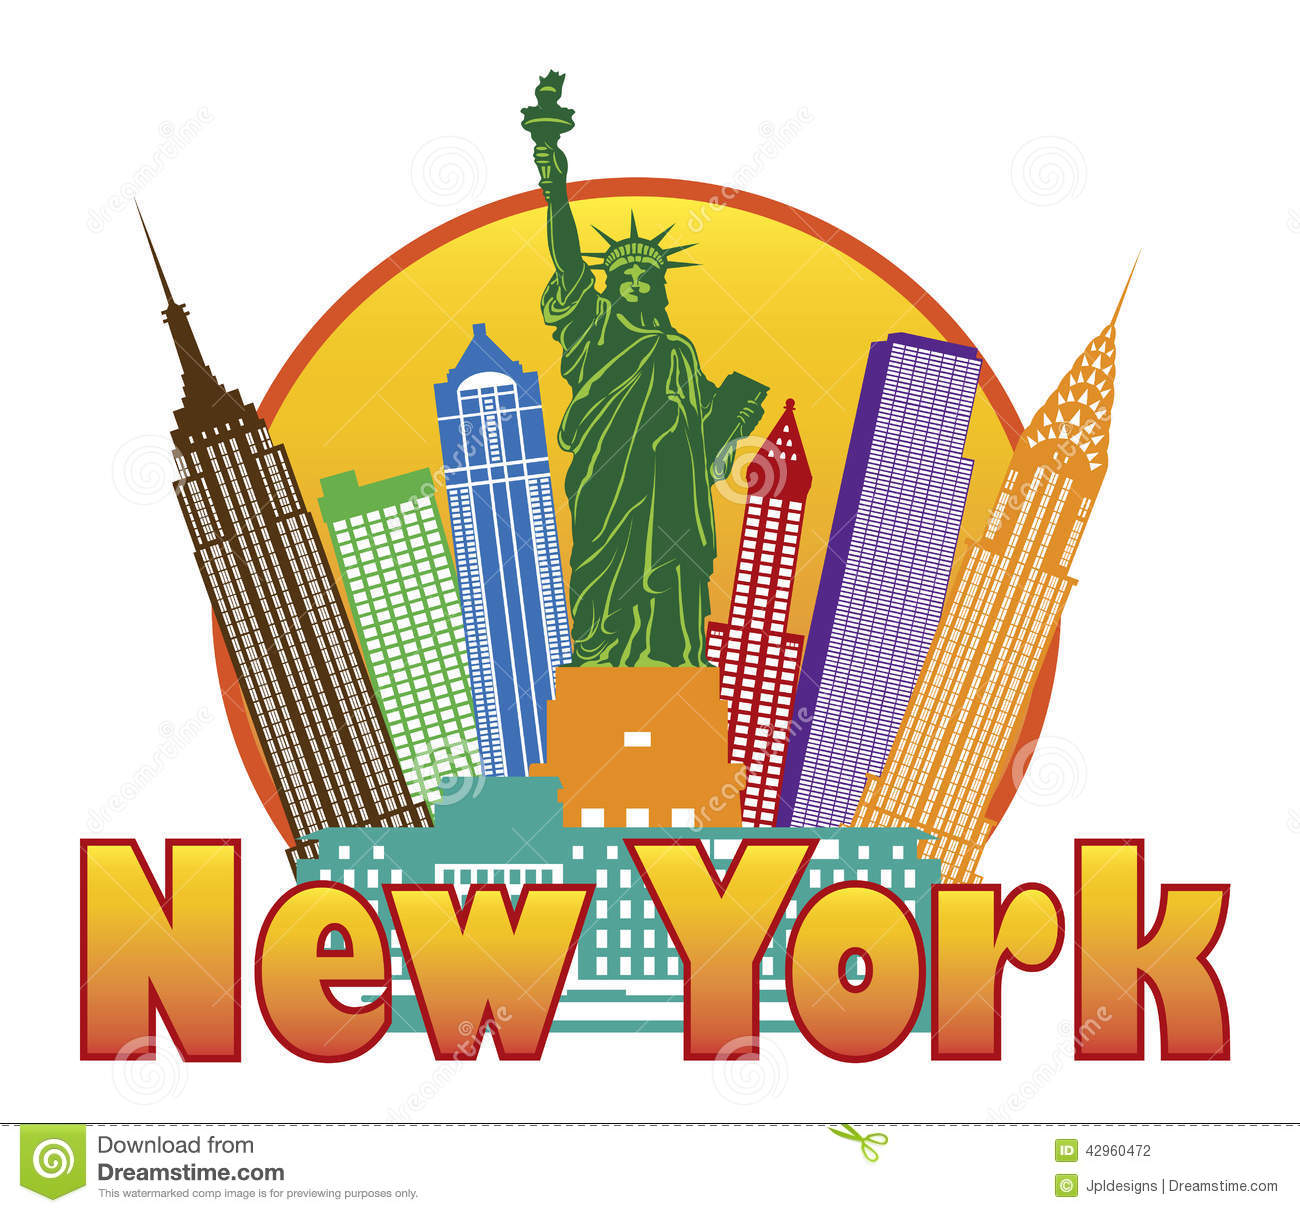 Clip Art New York City Clipart new york clipart kid city colorful skyline with statue of liberty in circle